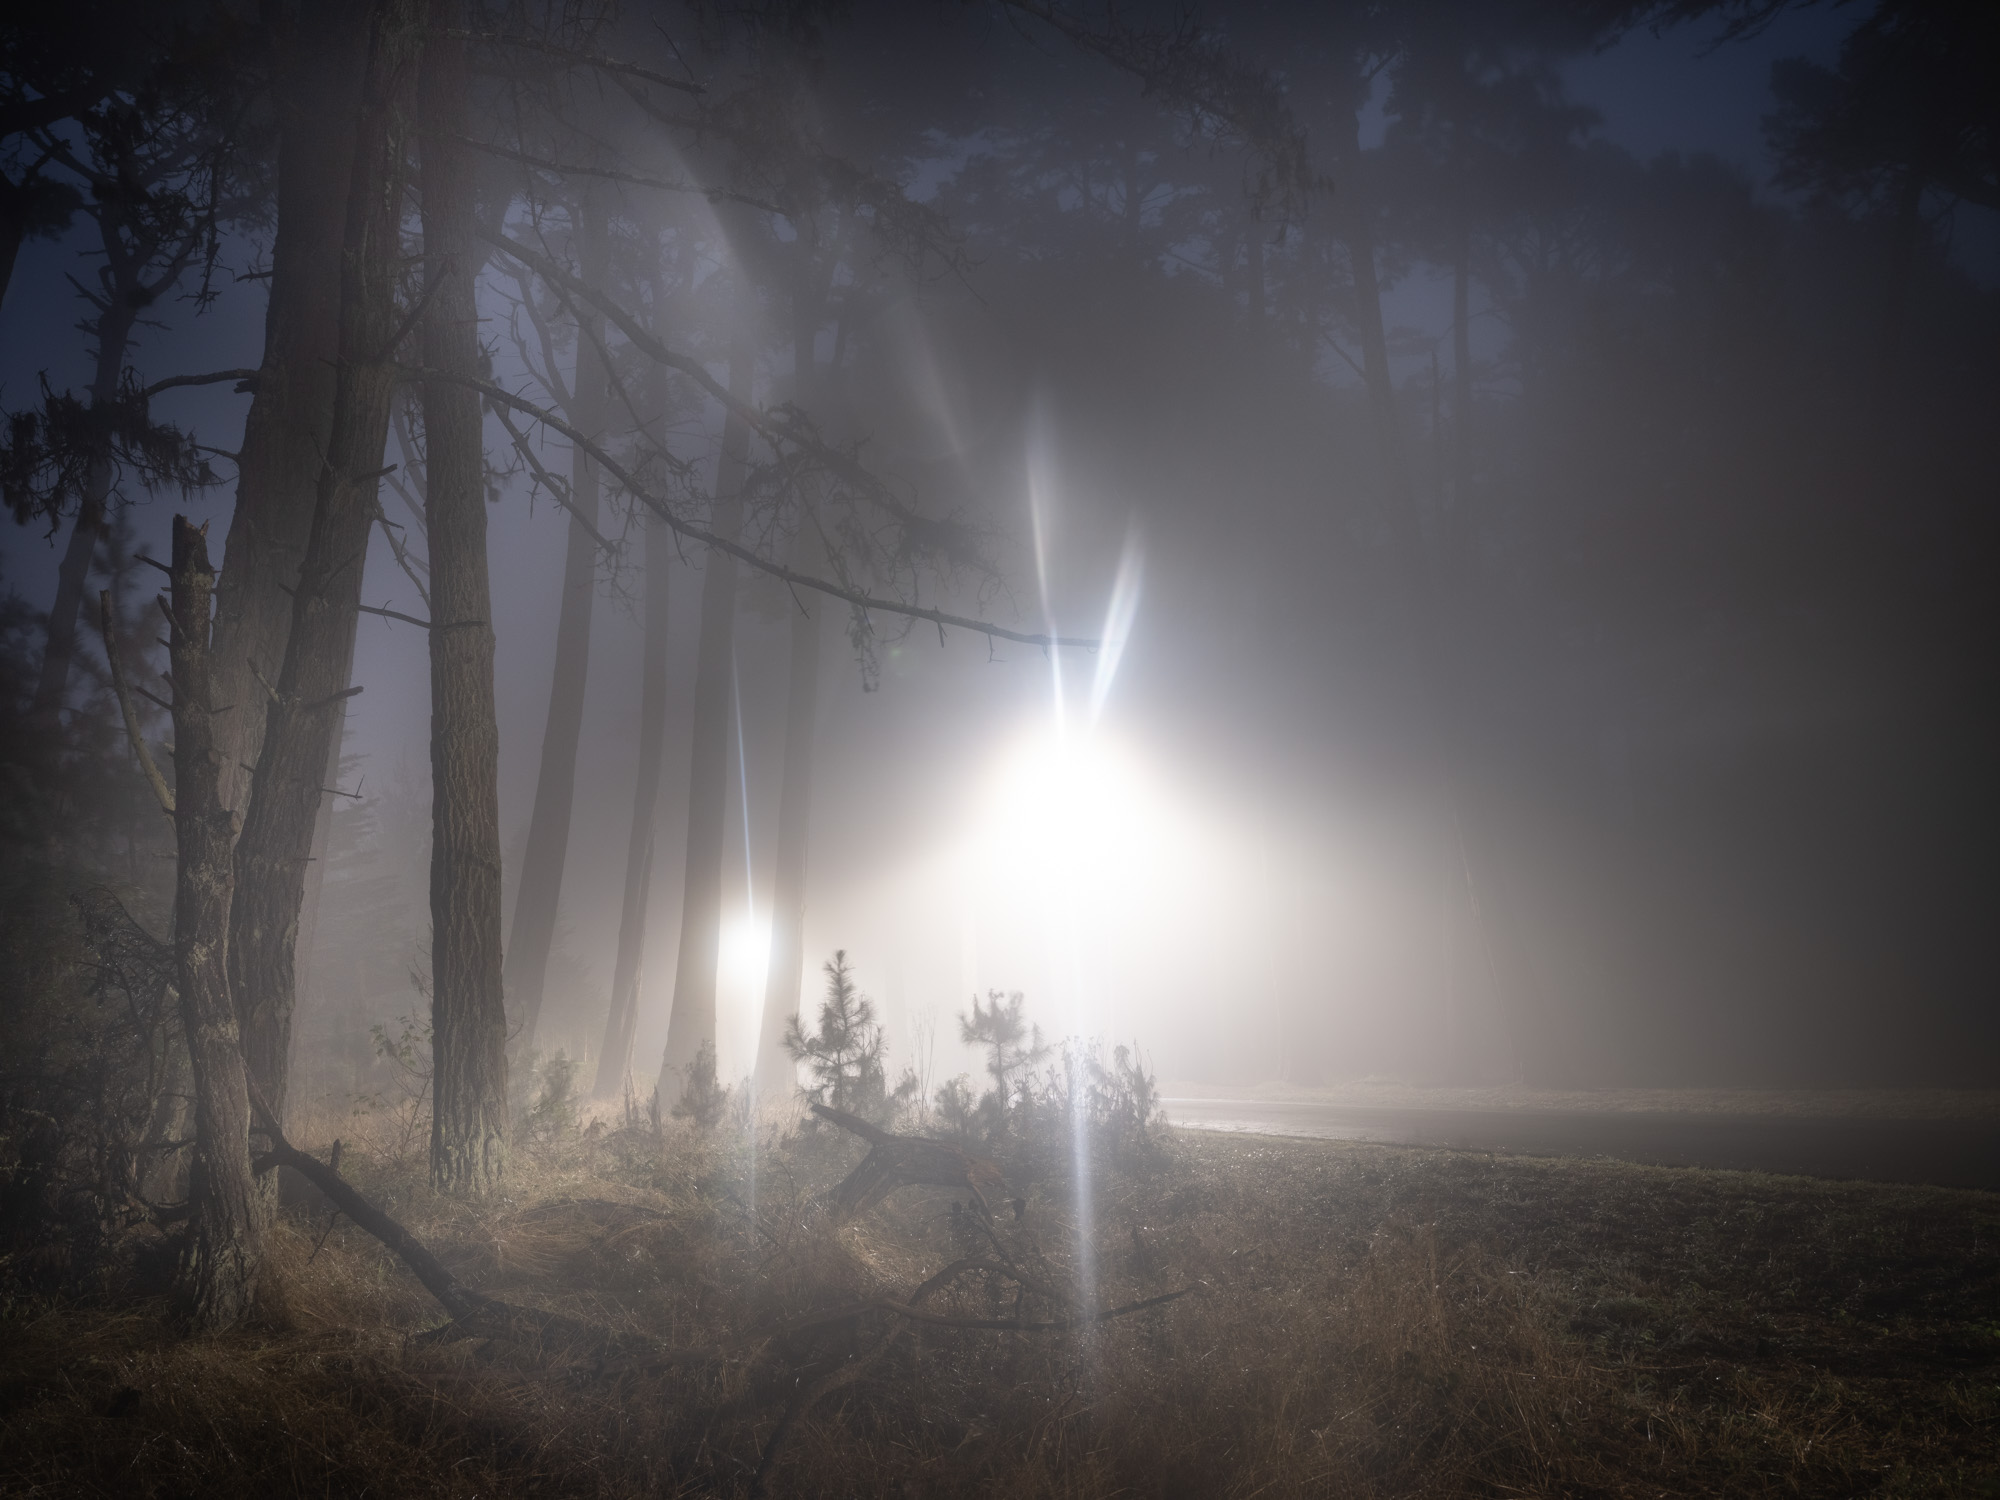 Light behind trees with light source.